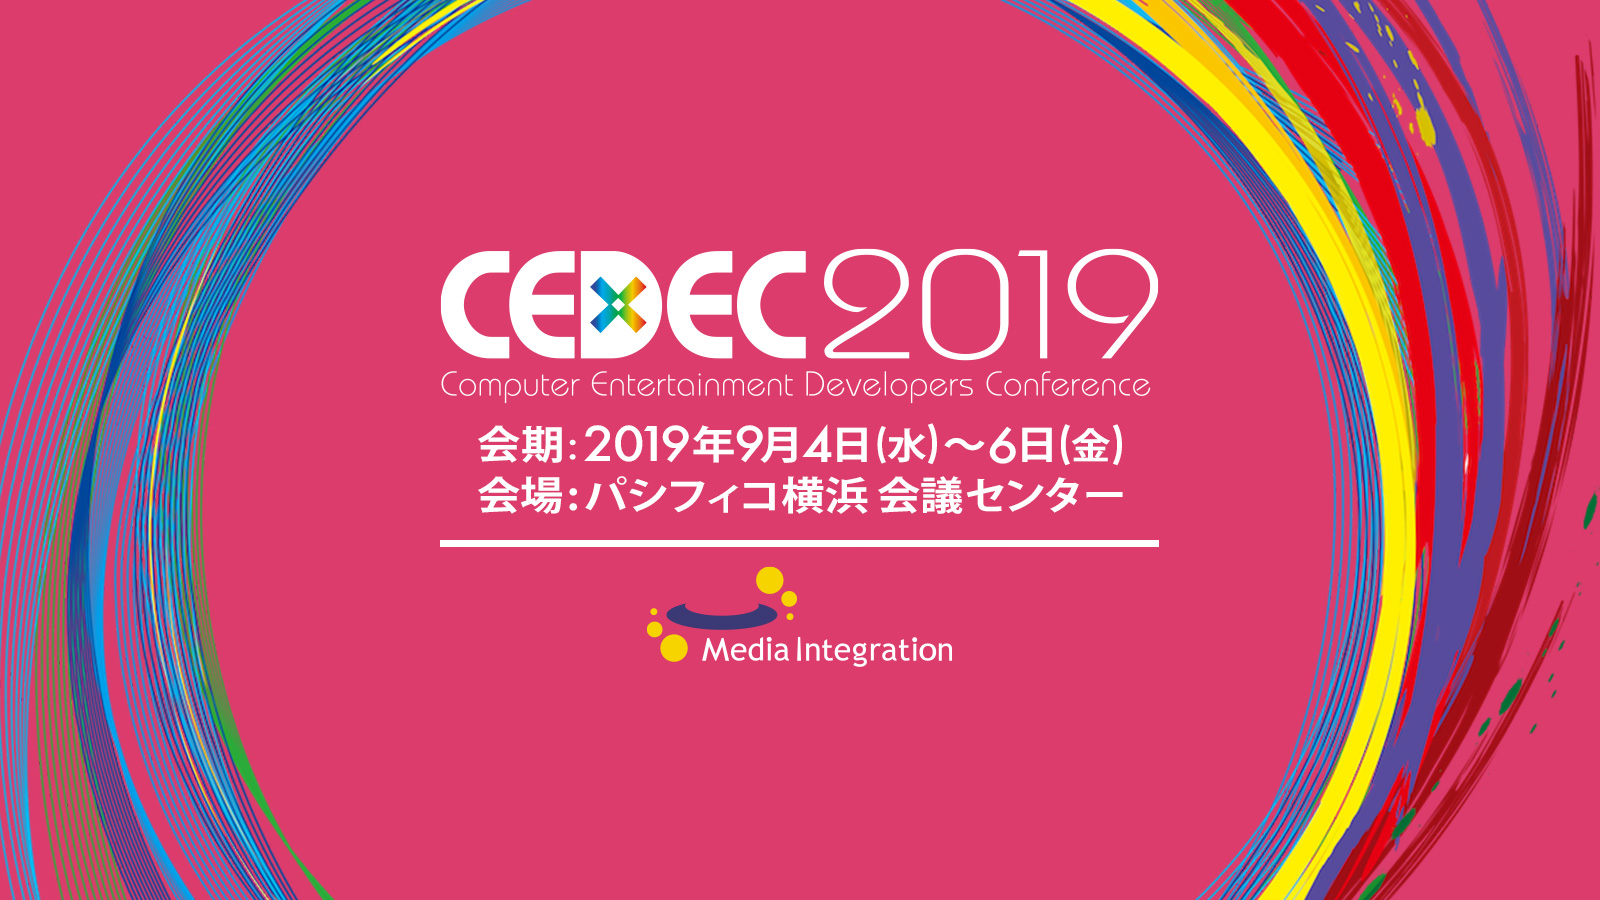 CEDEC 2019 @パシフィコ横浜会議センターに出展します。